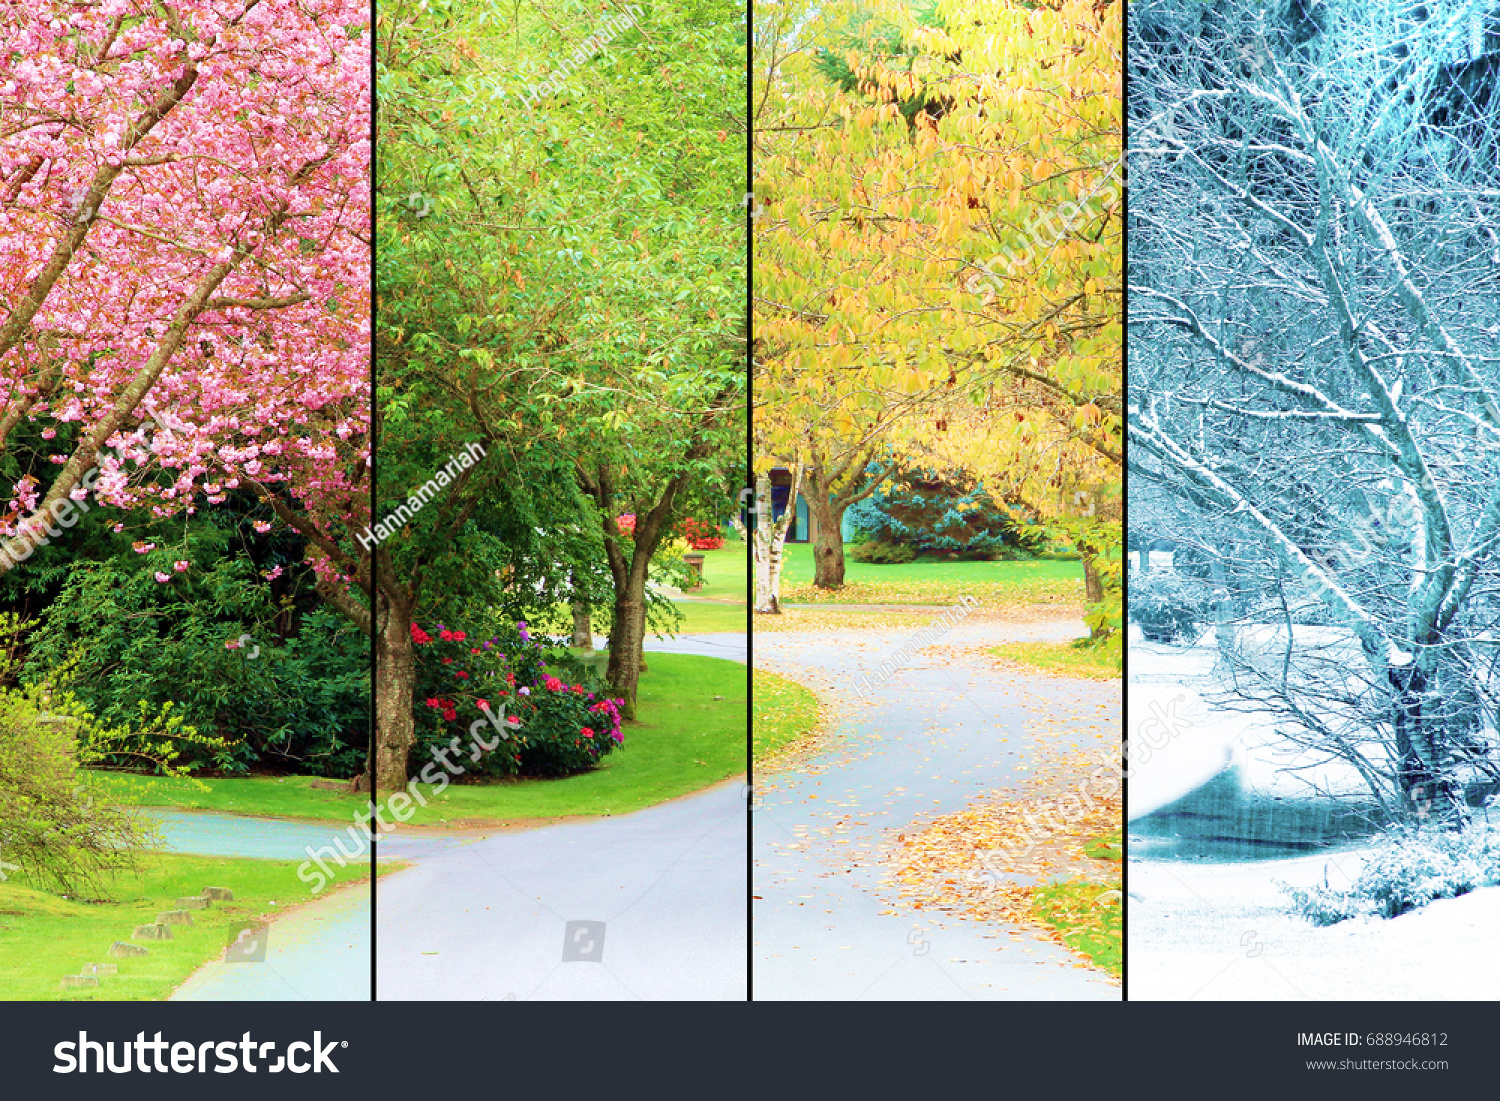 A tree lined street, photographed in all four seasons from the same location. Spring, Summer, Fall, Winter.  #688946812